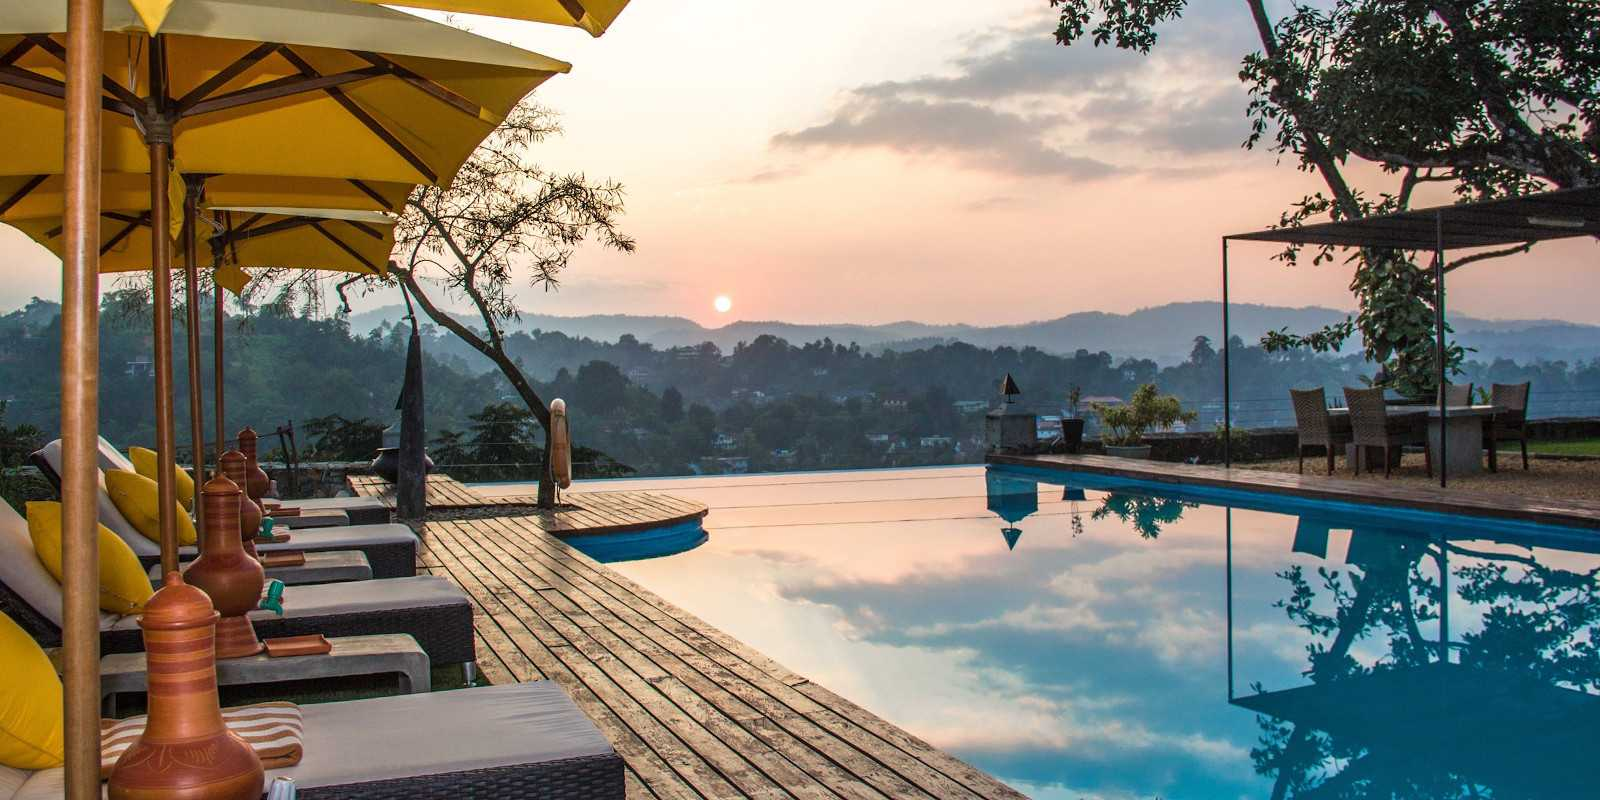 Elephant stables is  a romantic boutique hotel in Kandy, with a great view over the valley